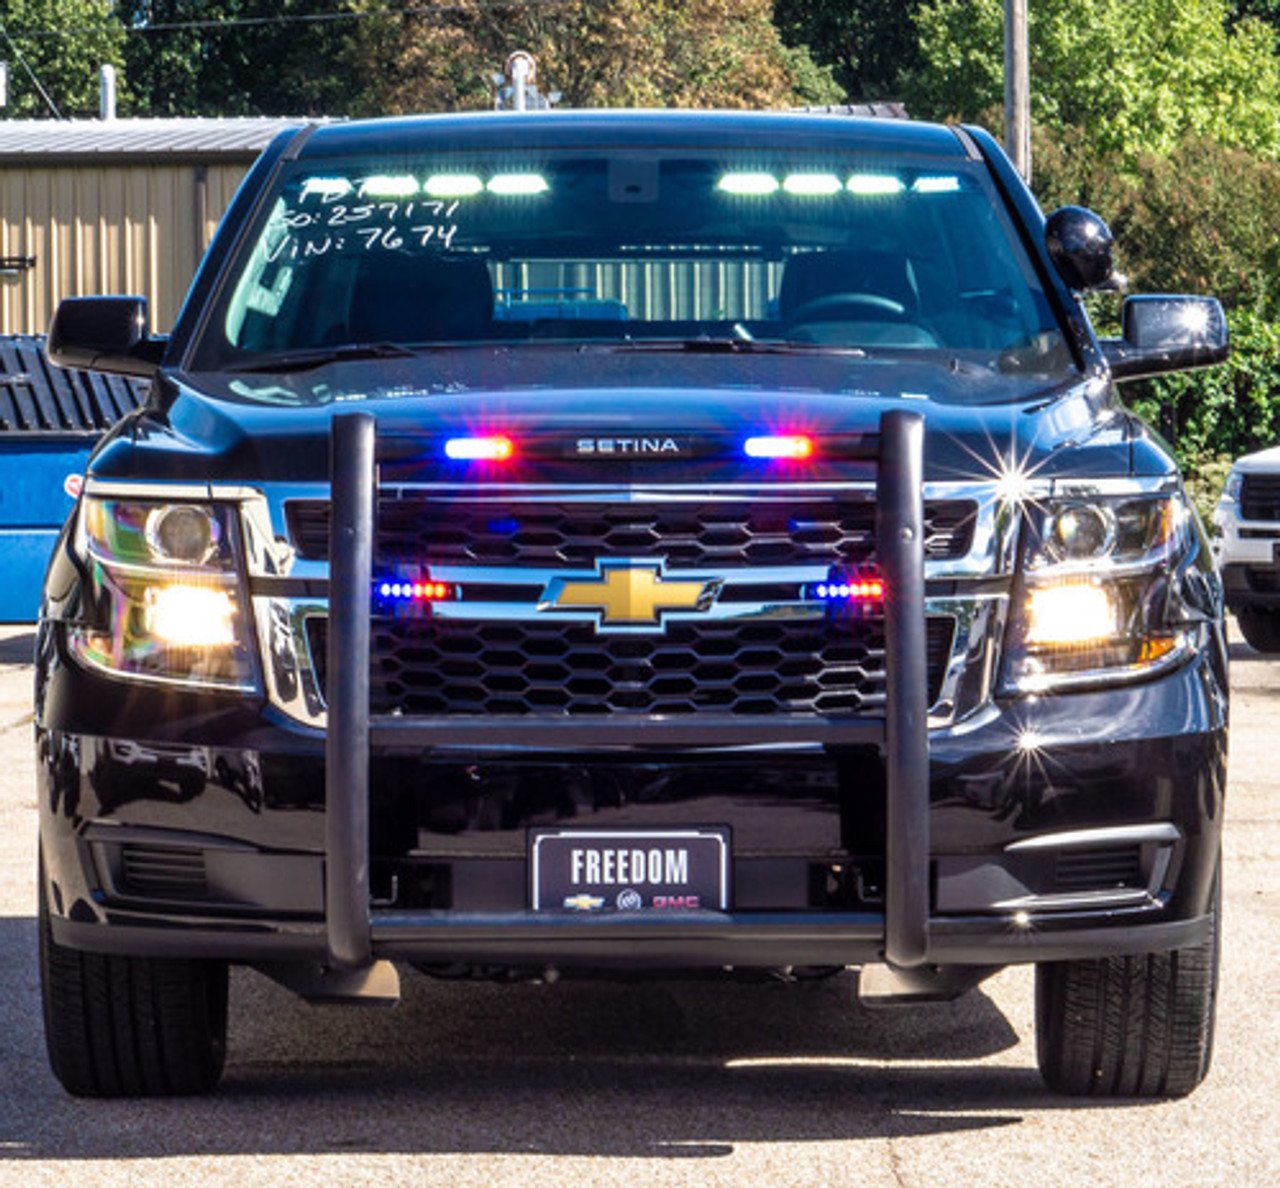 New 2019 Black Tahoe 4x4 PPV Slick-Top Admin Ready for the Road Turnkey Police Package pre-built with Red-Blue LED Lighting and Equipment,  Free Delivery, 4WD, V8